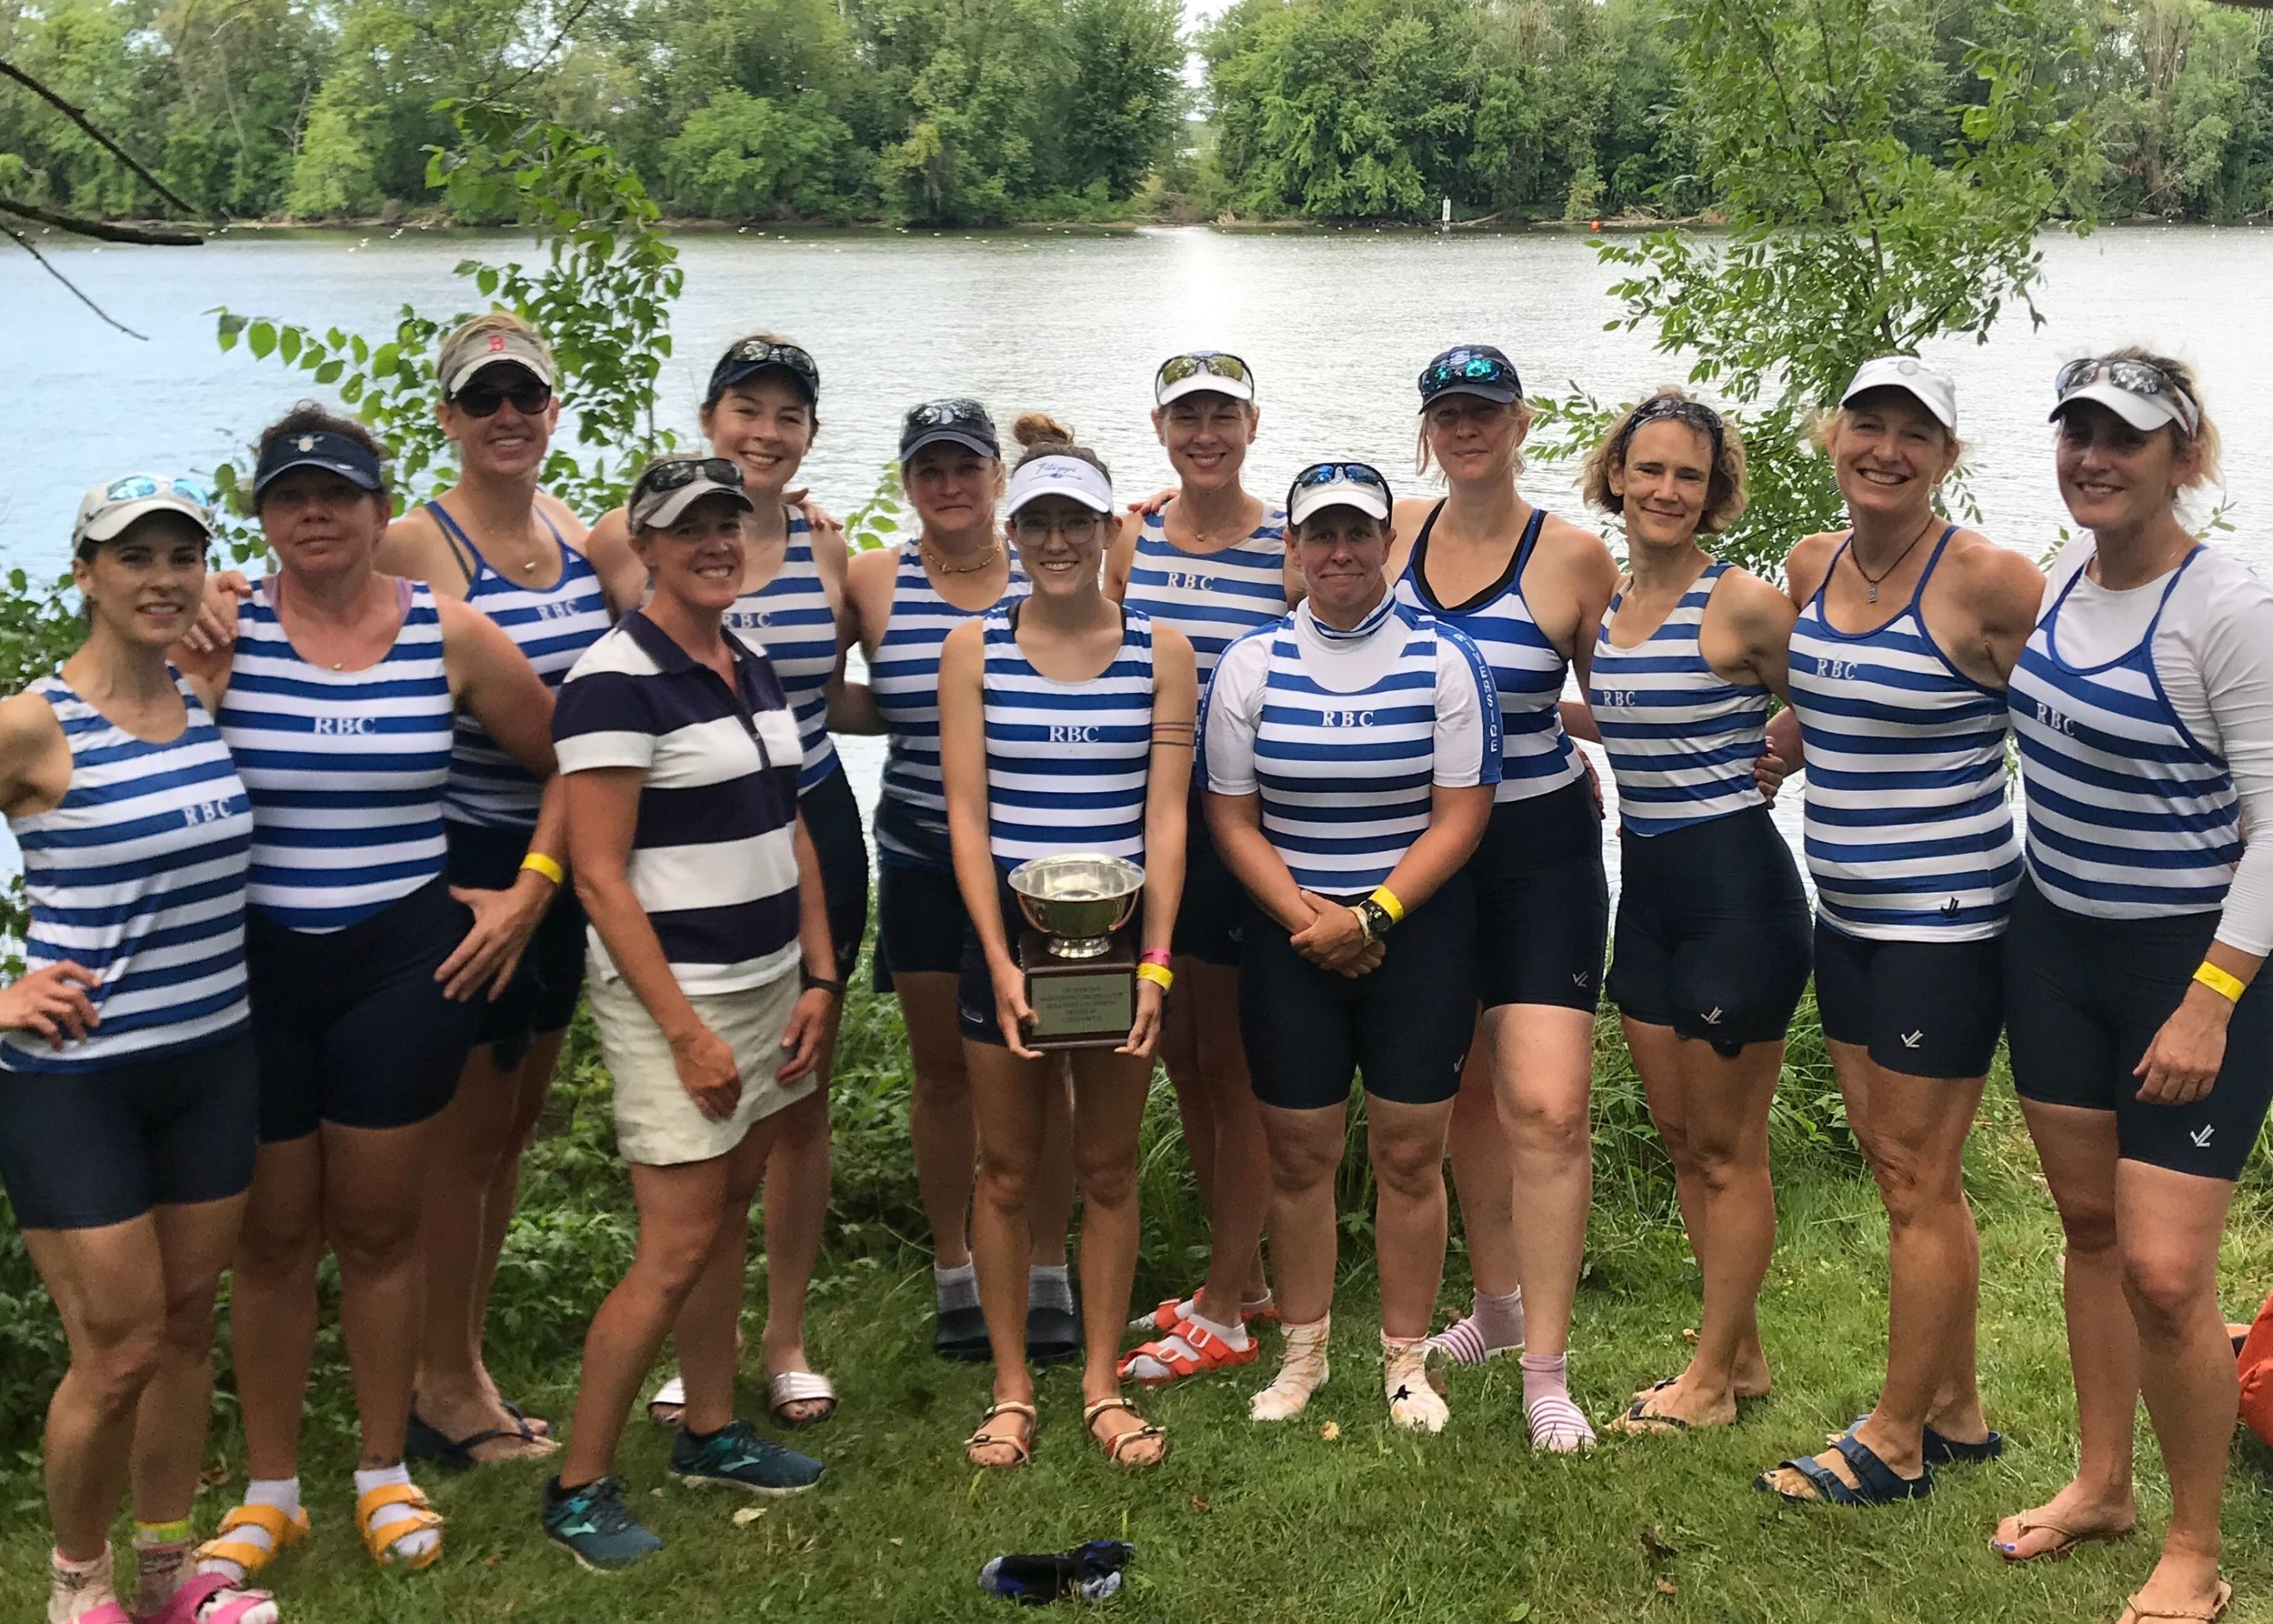 Women's Masters Team and Coach Jessica Smith